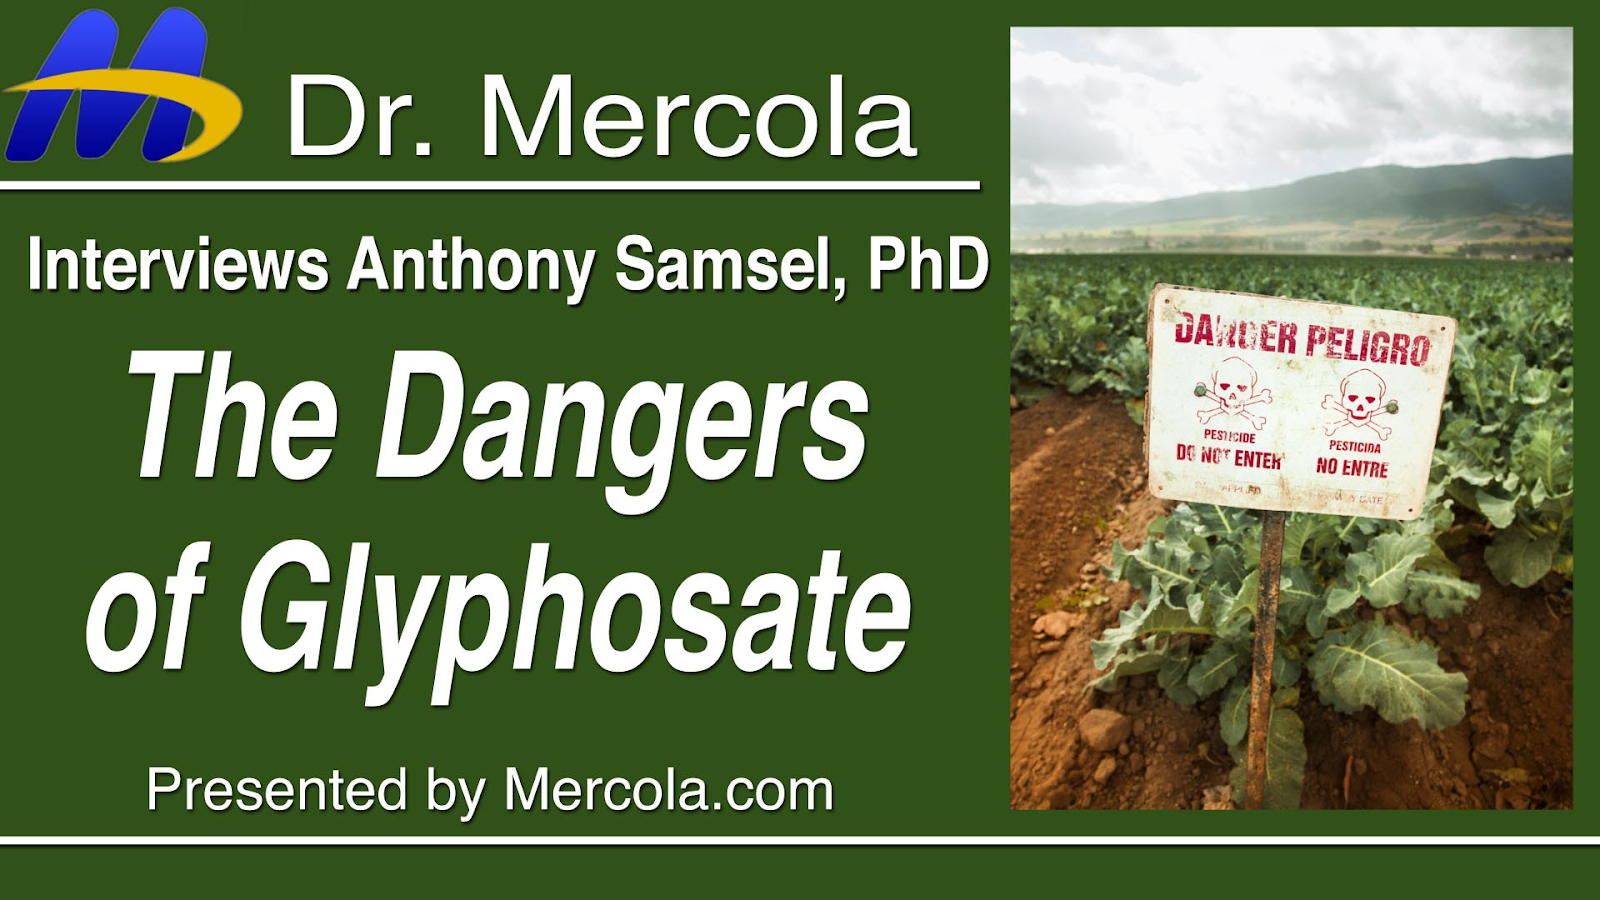 Glyphosate, Monsanto, and Dr. Mercola